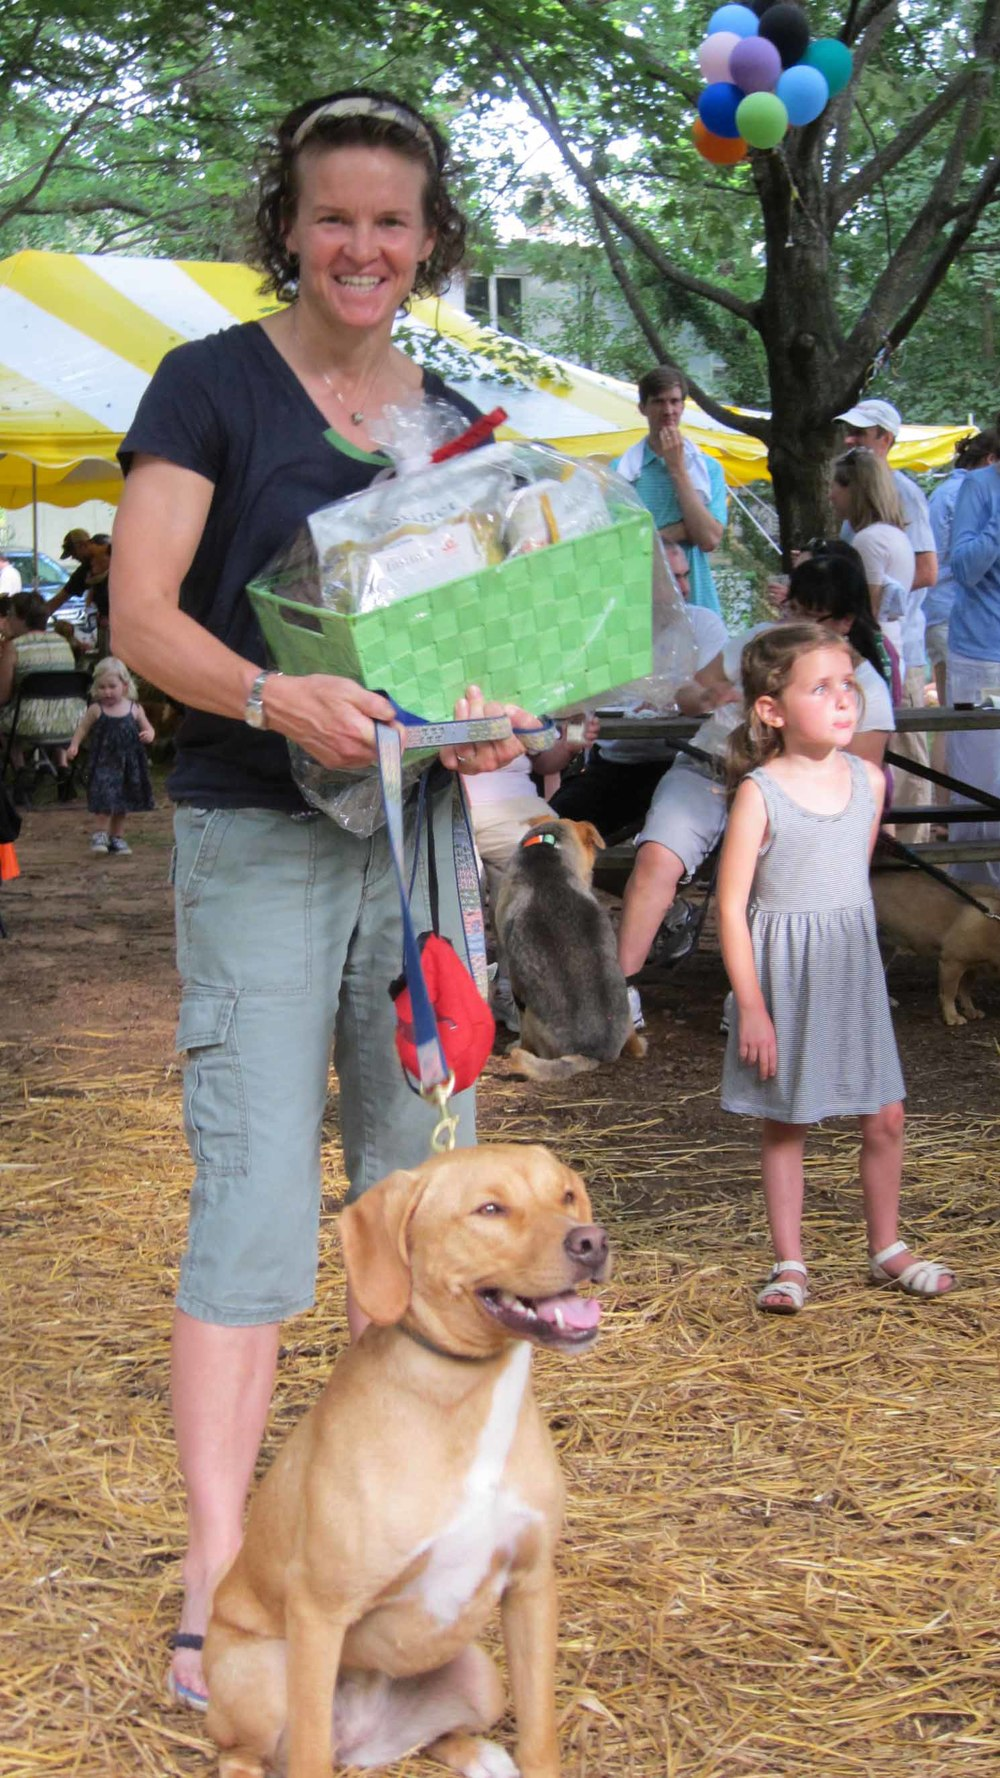 1st place winner Fenway and owner Julie Goodwin take home a prize donated by unleashed by petco.